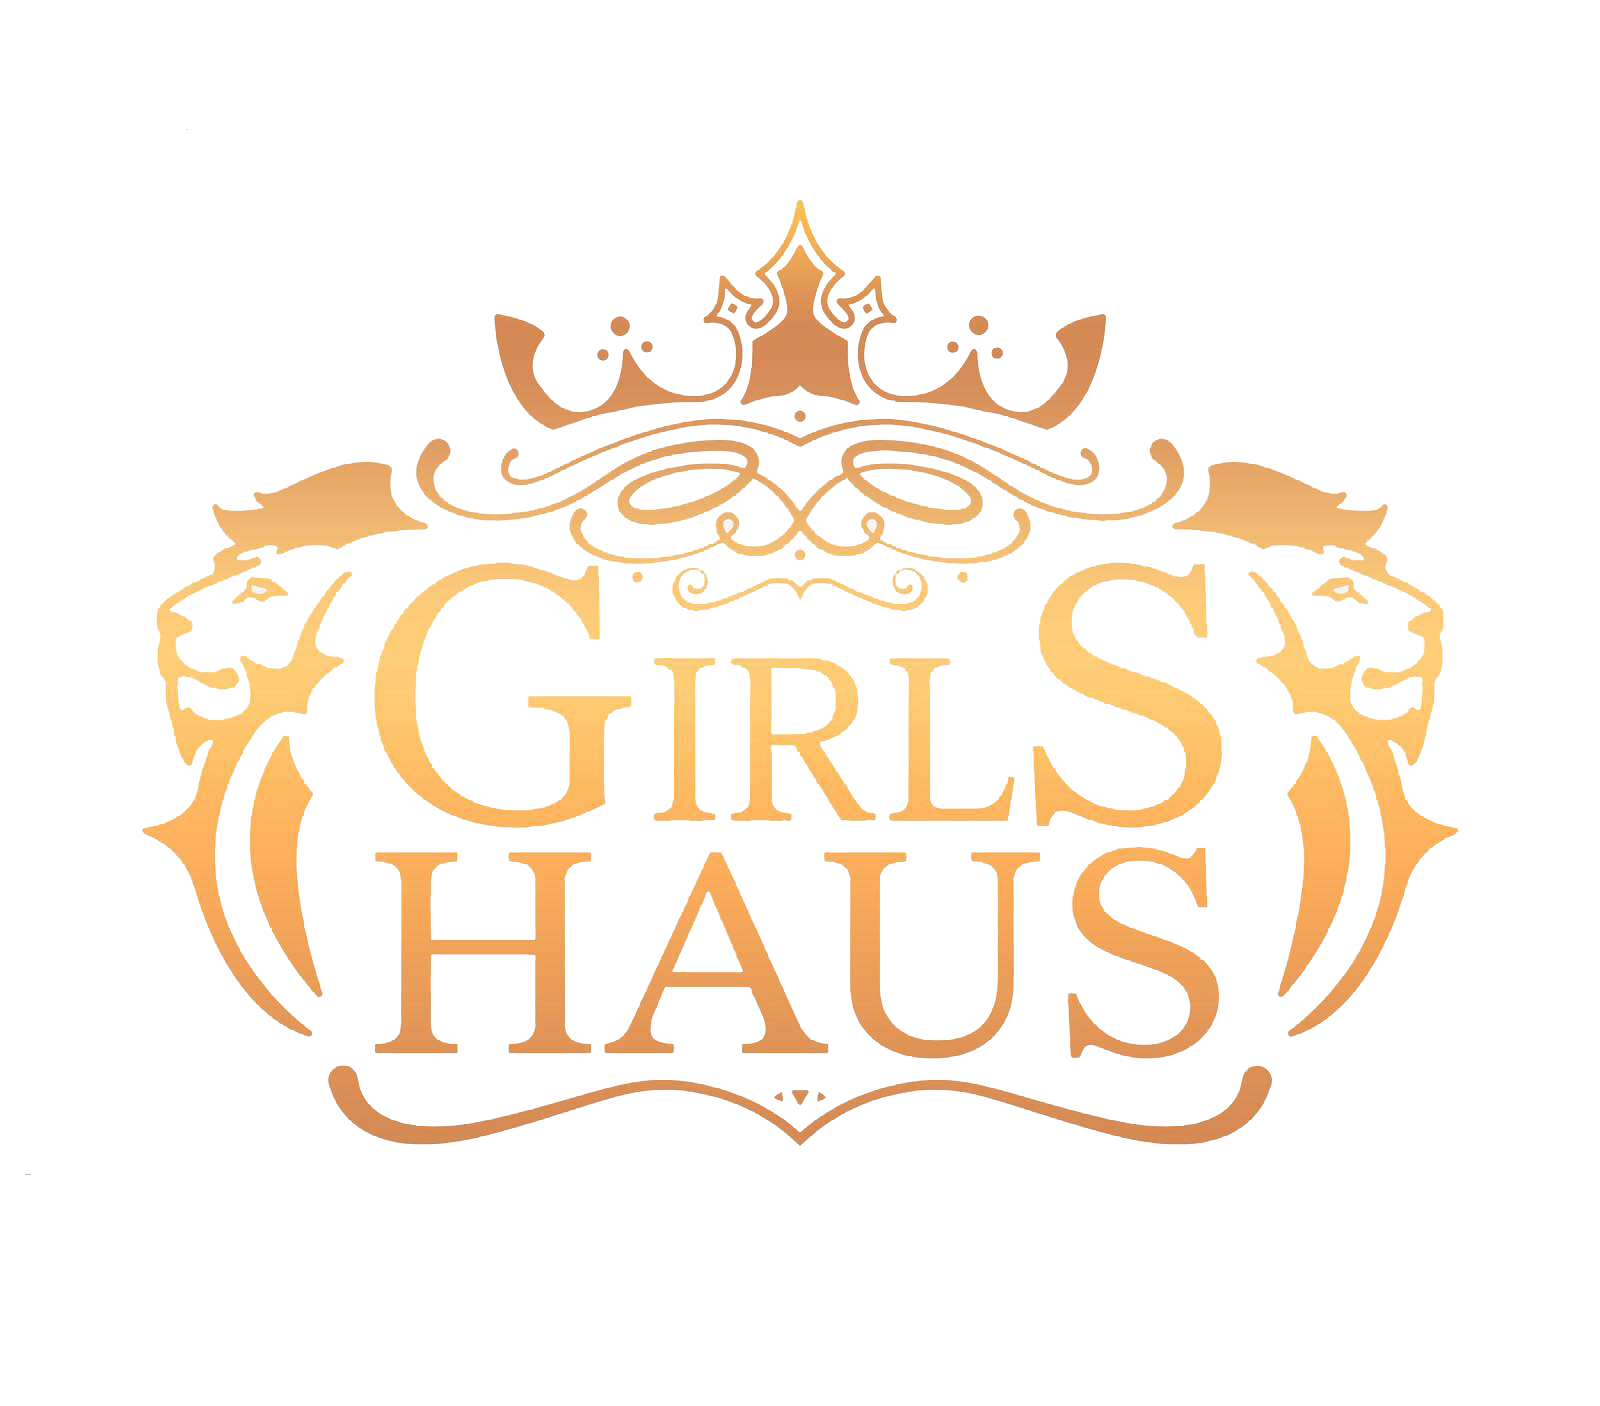 girls-haus19.de